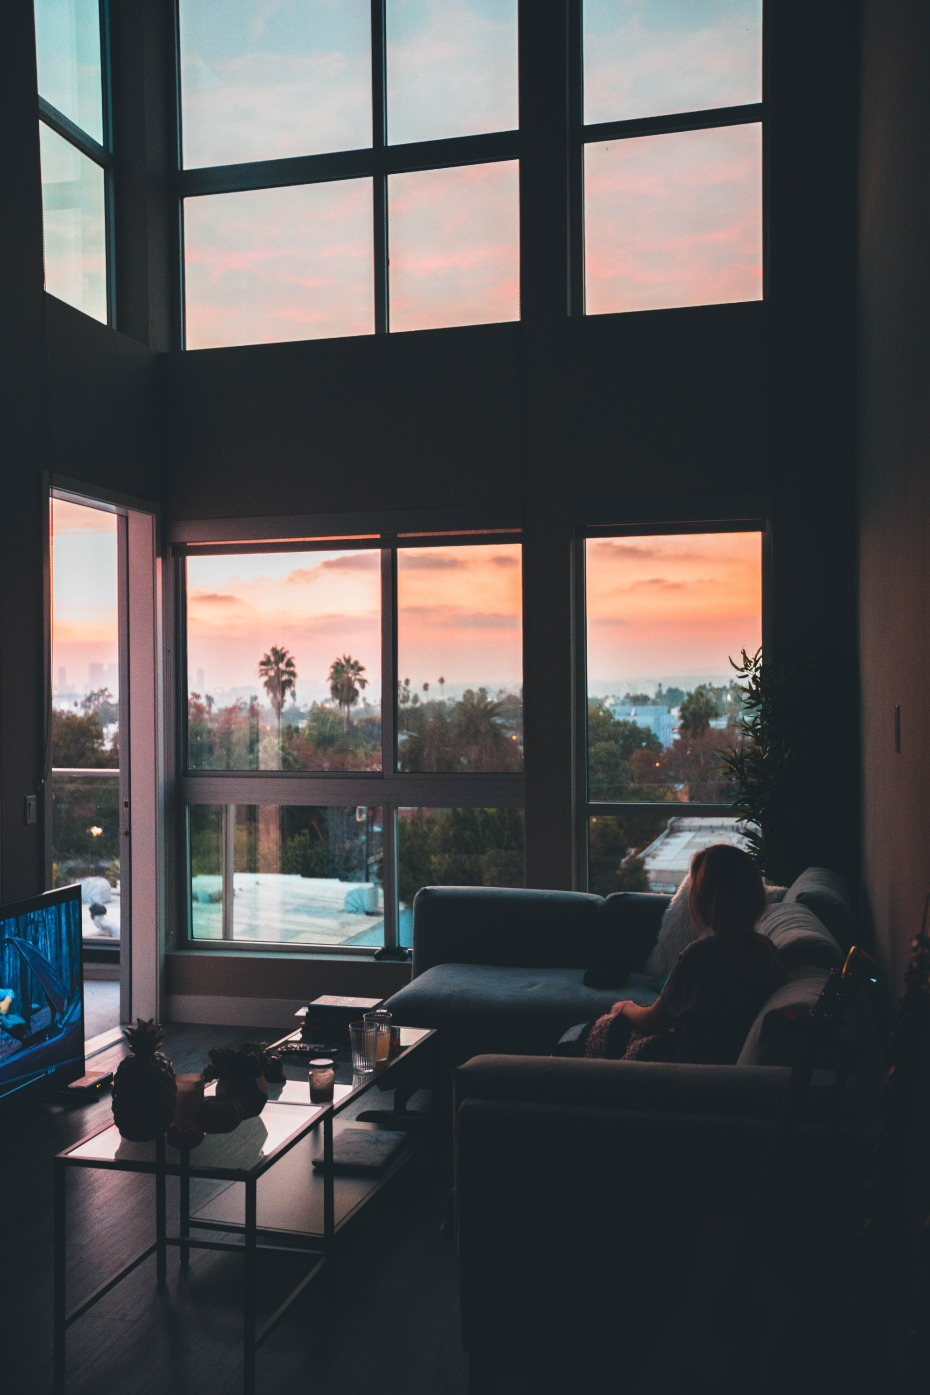 Woman watching tv with sun setting outside